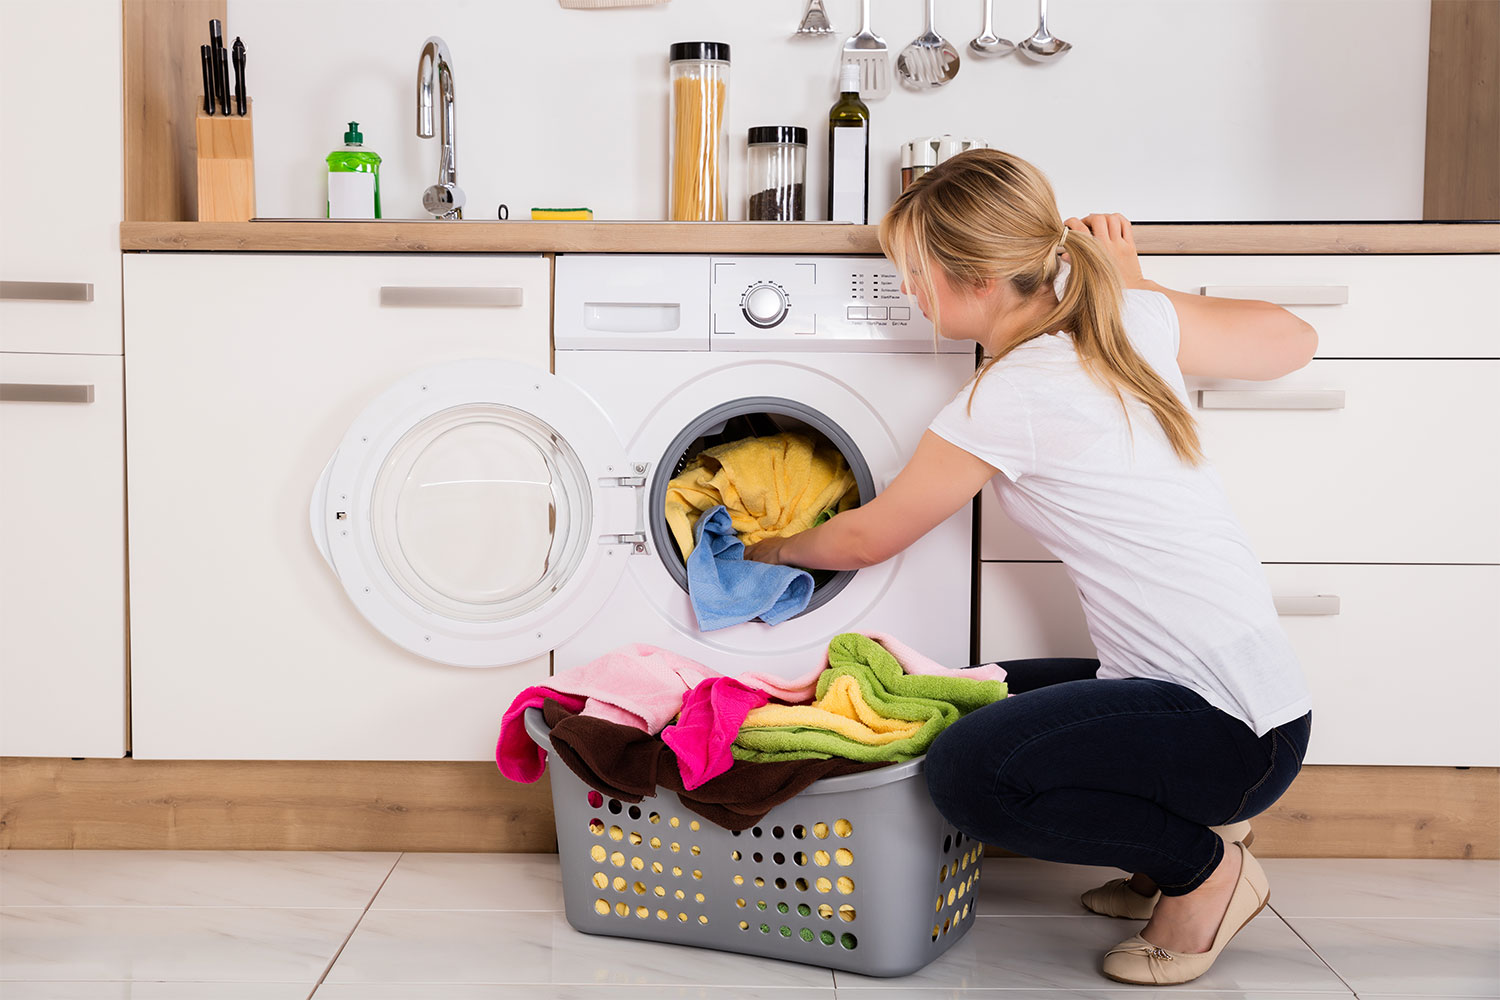 Does quick wash really work? | Better Homes and Gardens